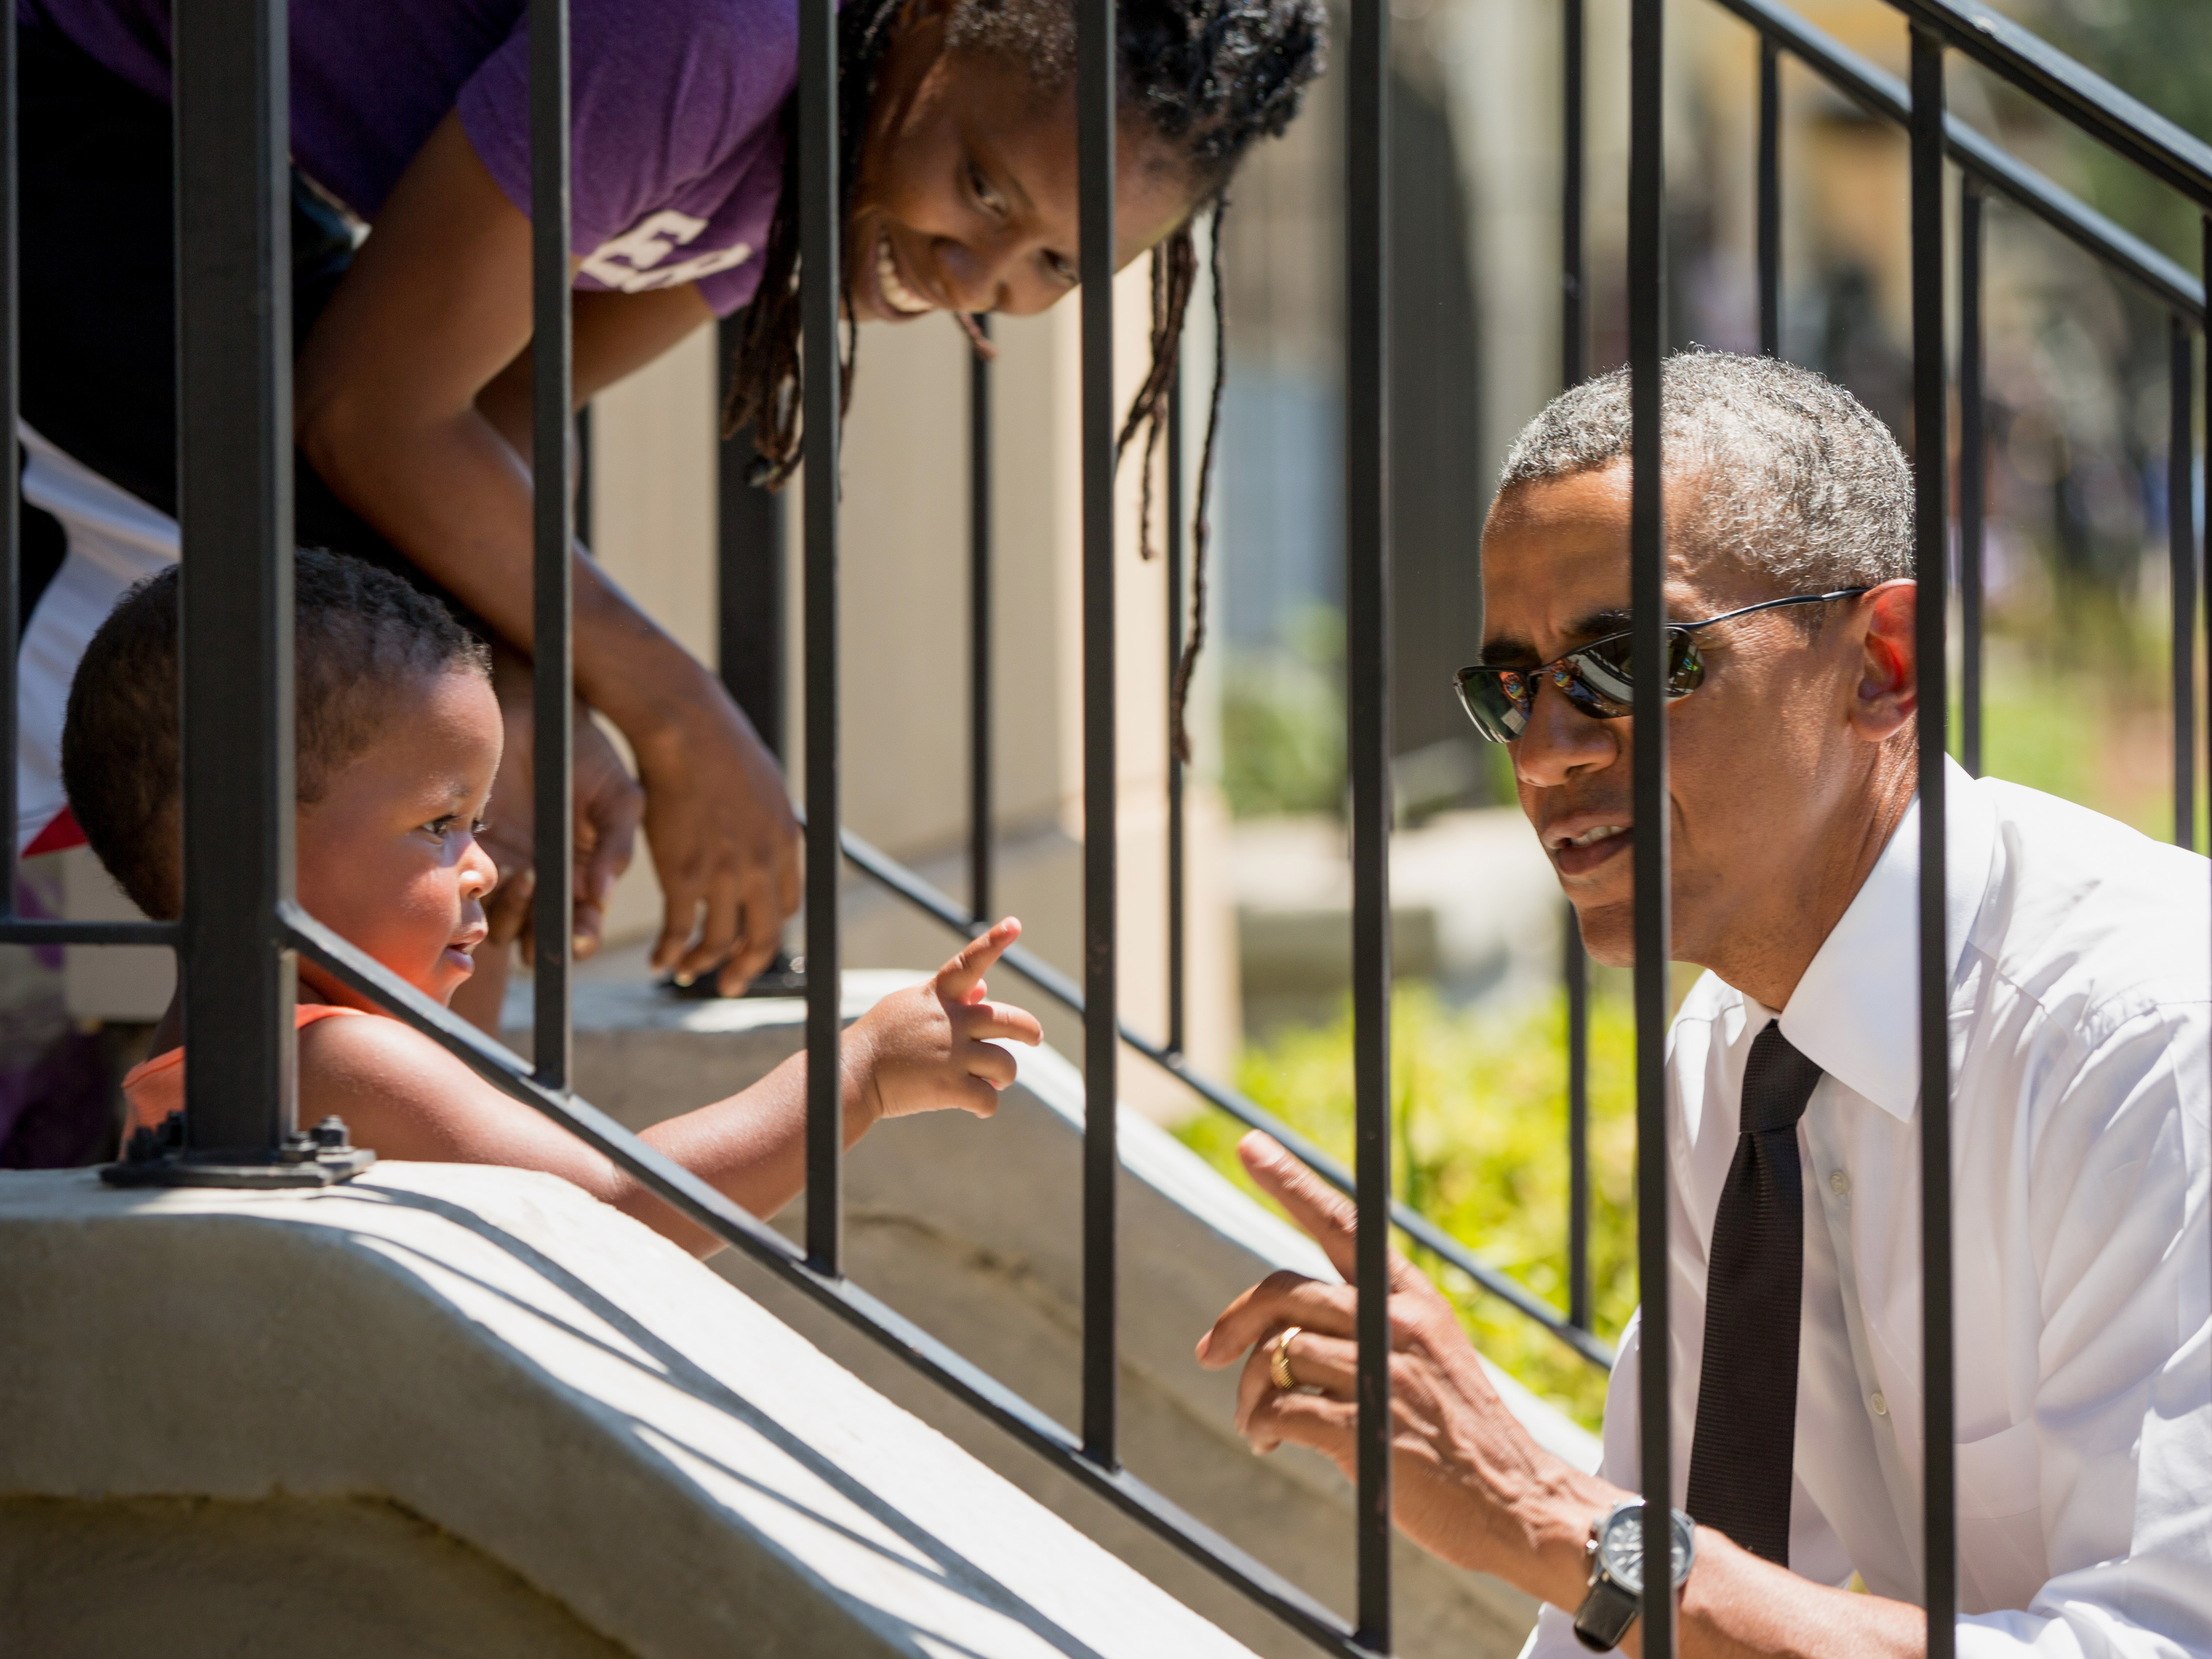 President Obama greets residents in New Orleans on Thursday while in town to mark 10 years since Hurricane Katrina. Andrew Harnik/AP